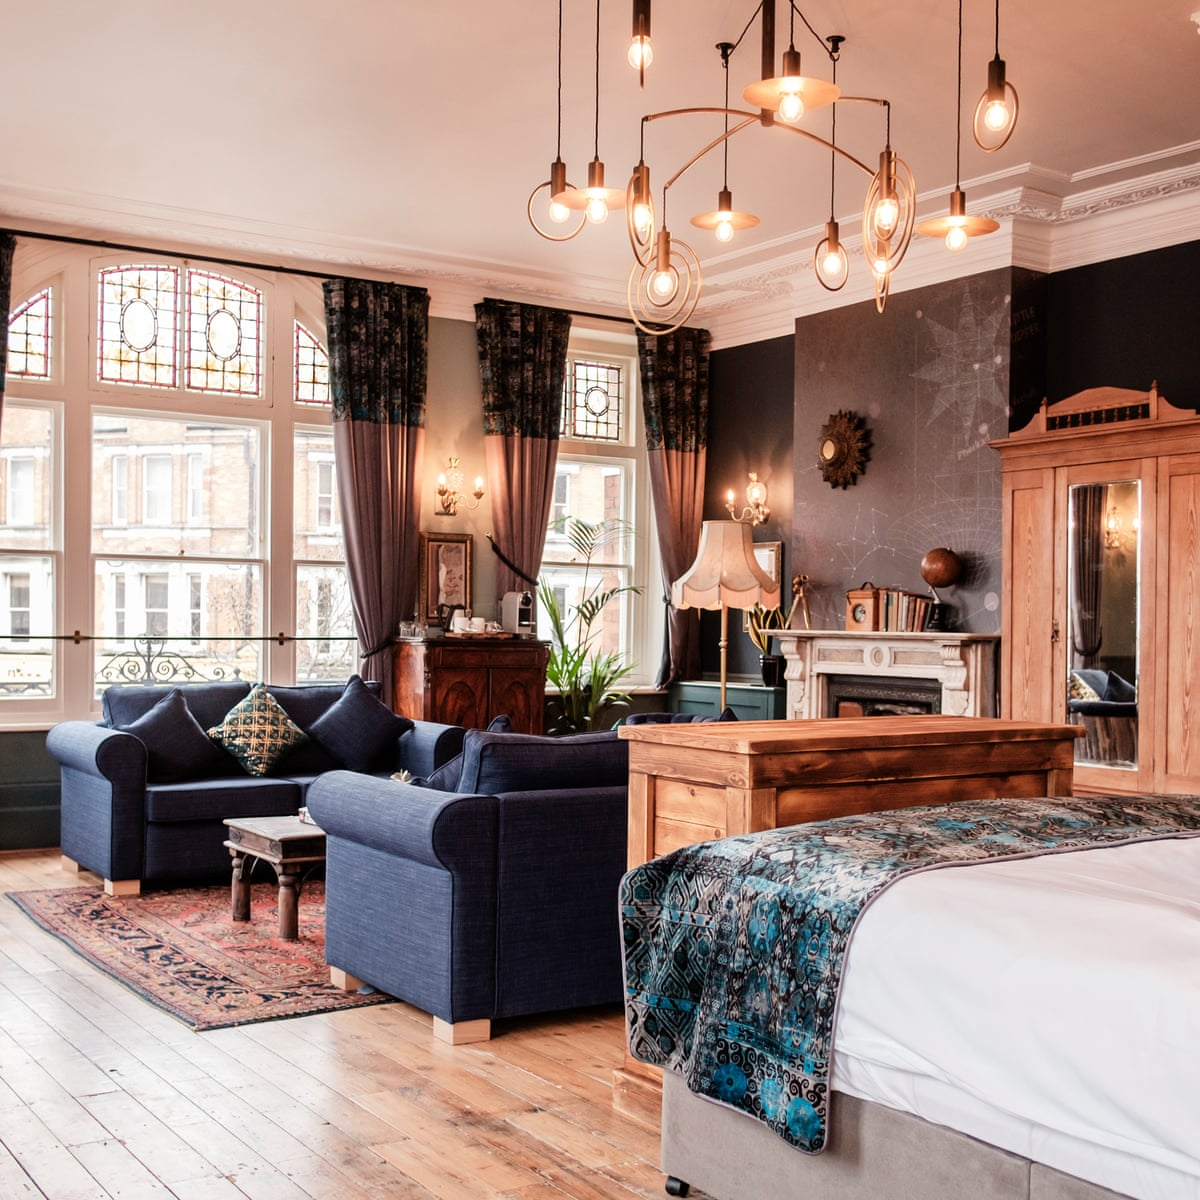 Bold Video 2017 Hotel the half moon, herne hill, london: hotel review | travel